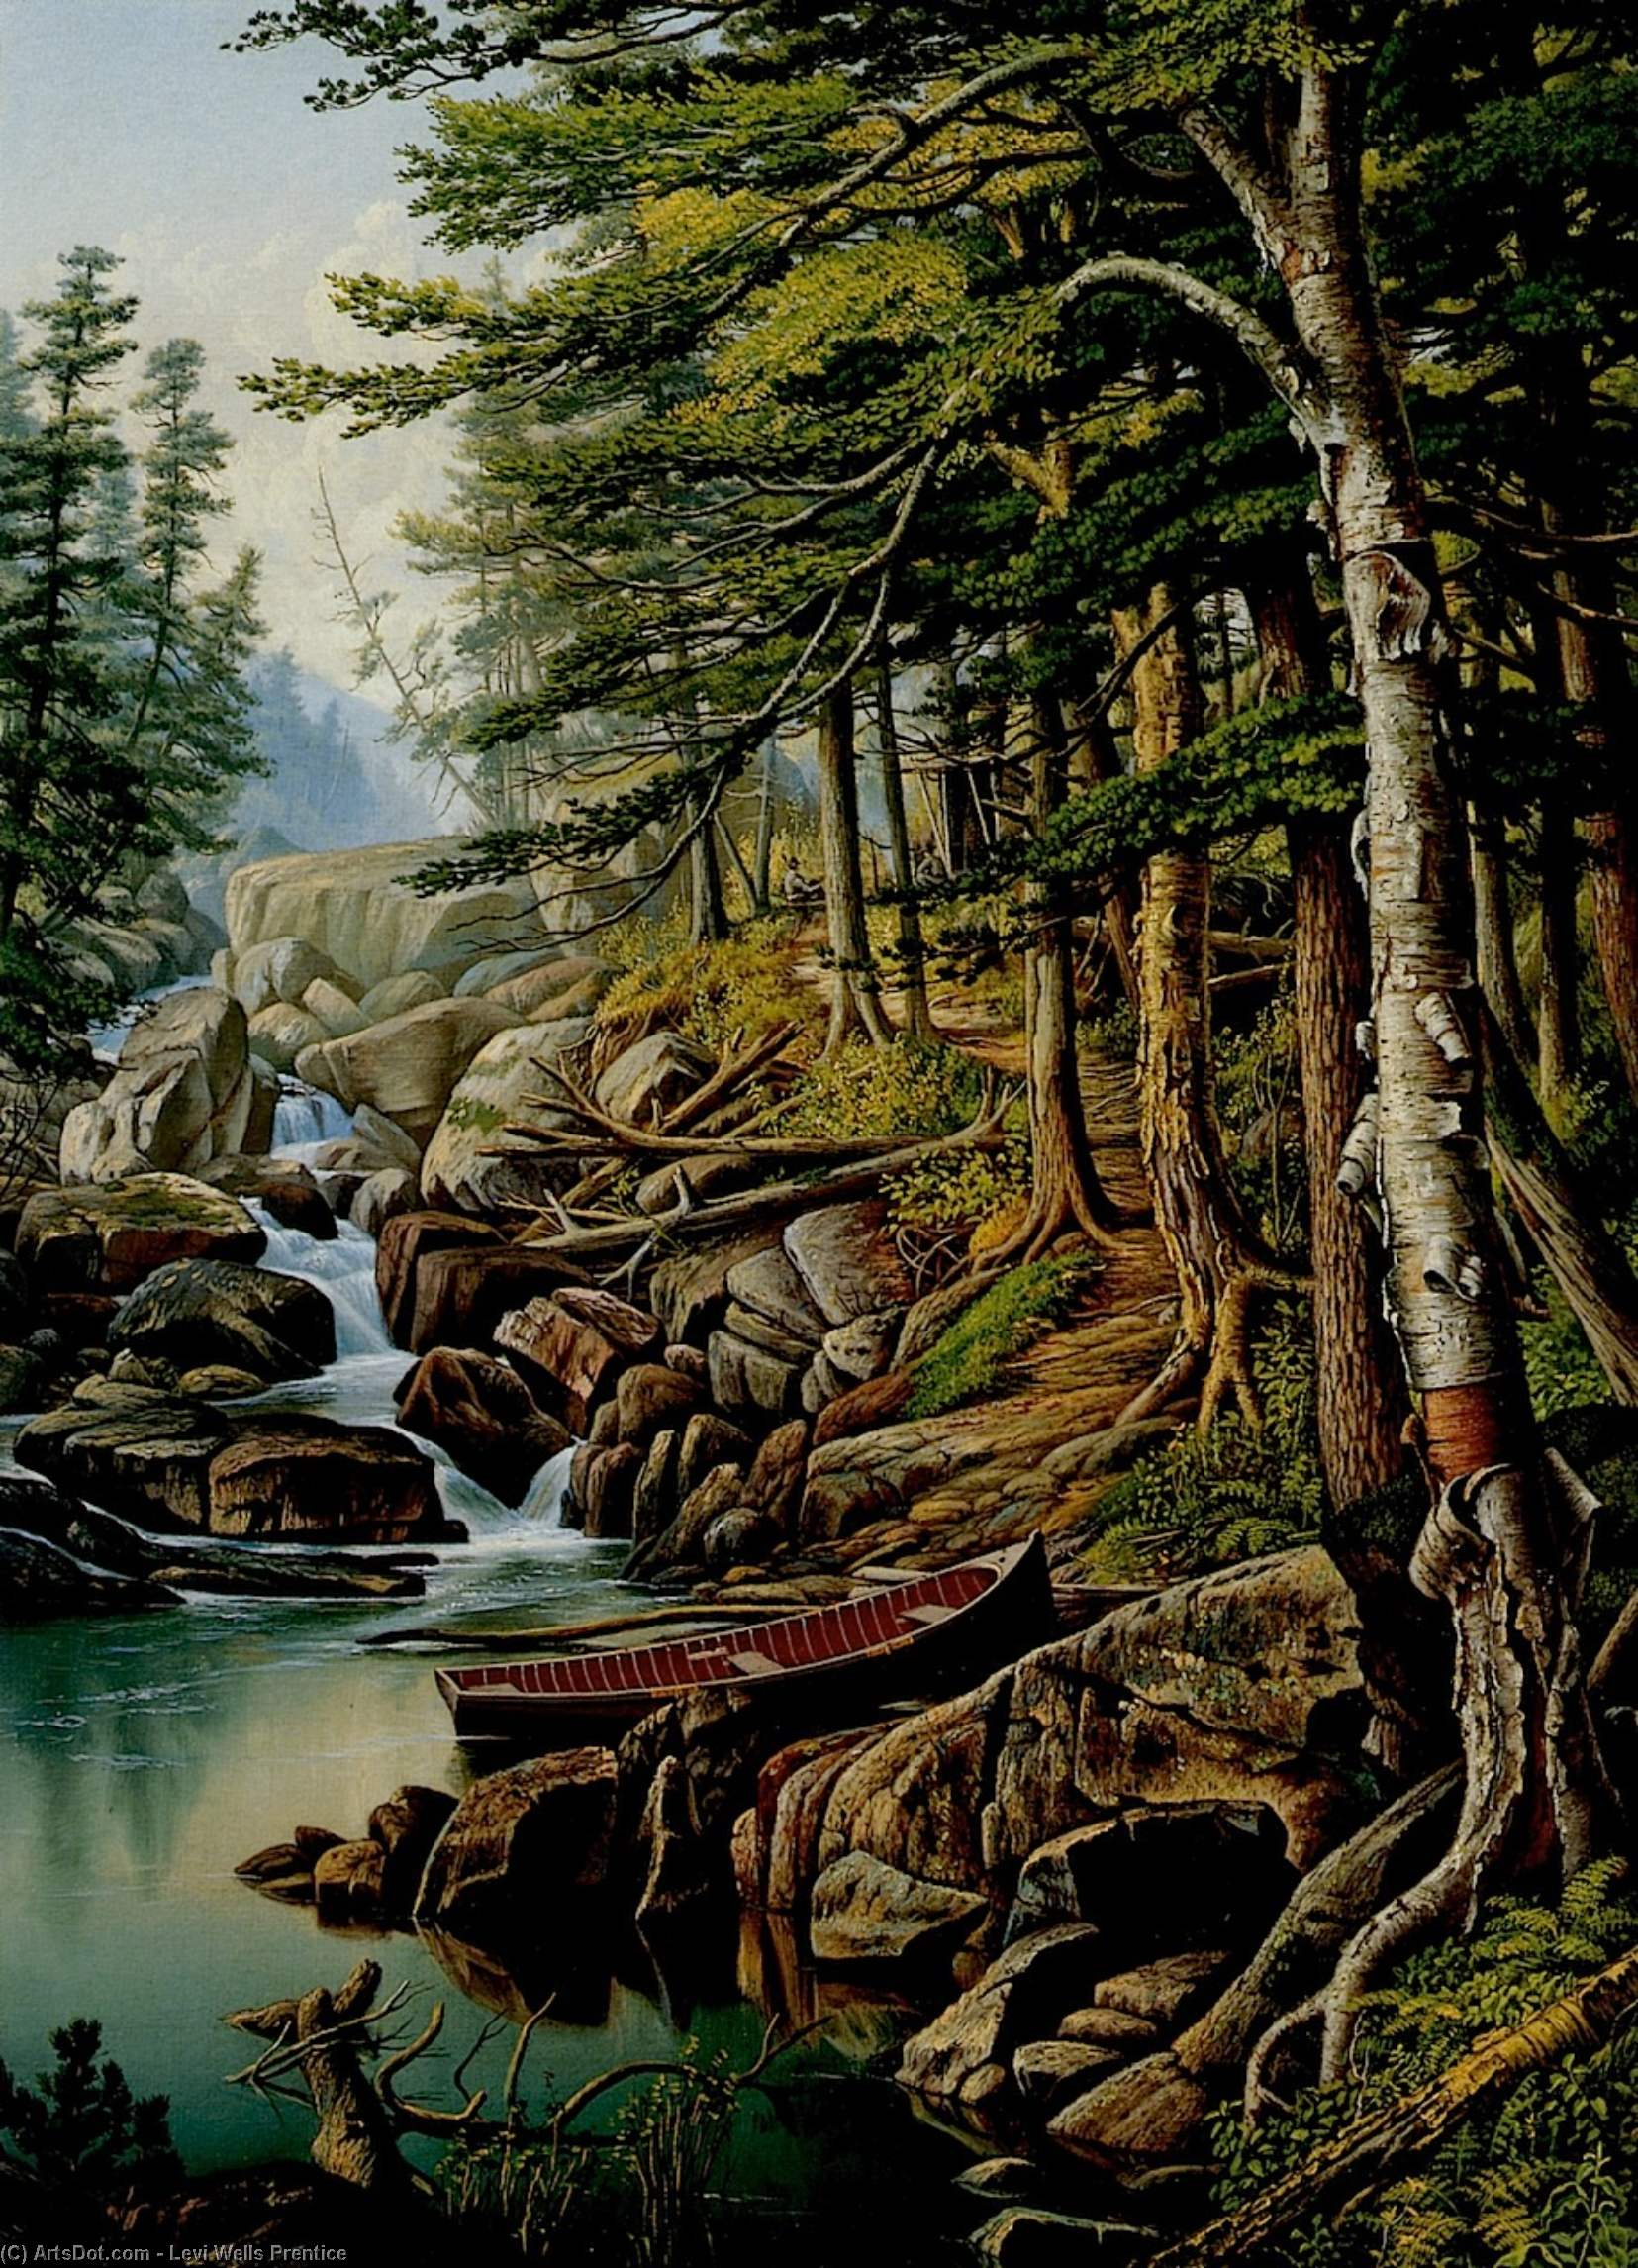 Moose River, Adirondacks, 1884 by Levi Wells Prentice (1851-1935, United States) | Paintings Reproductions Levi Wells Prentice | ArtsDot.com